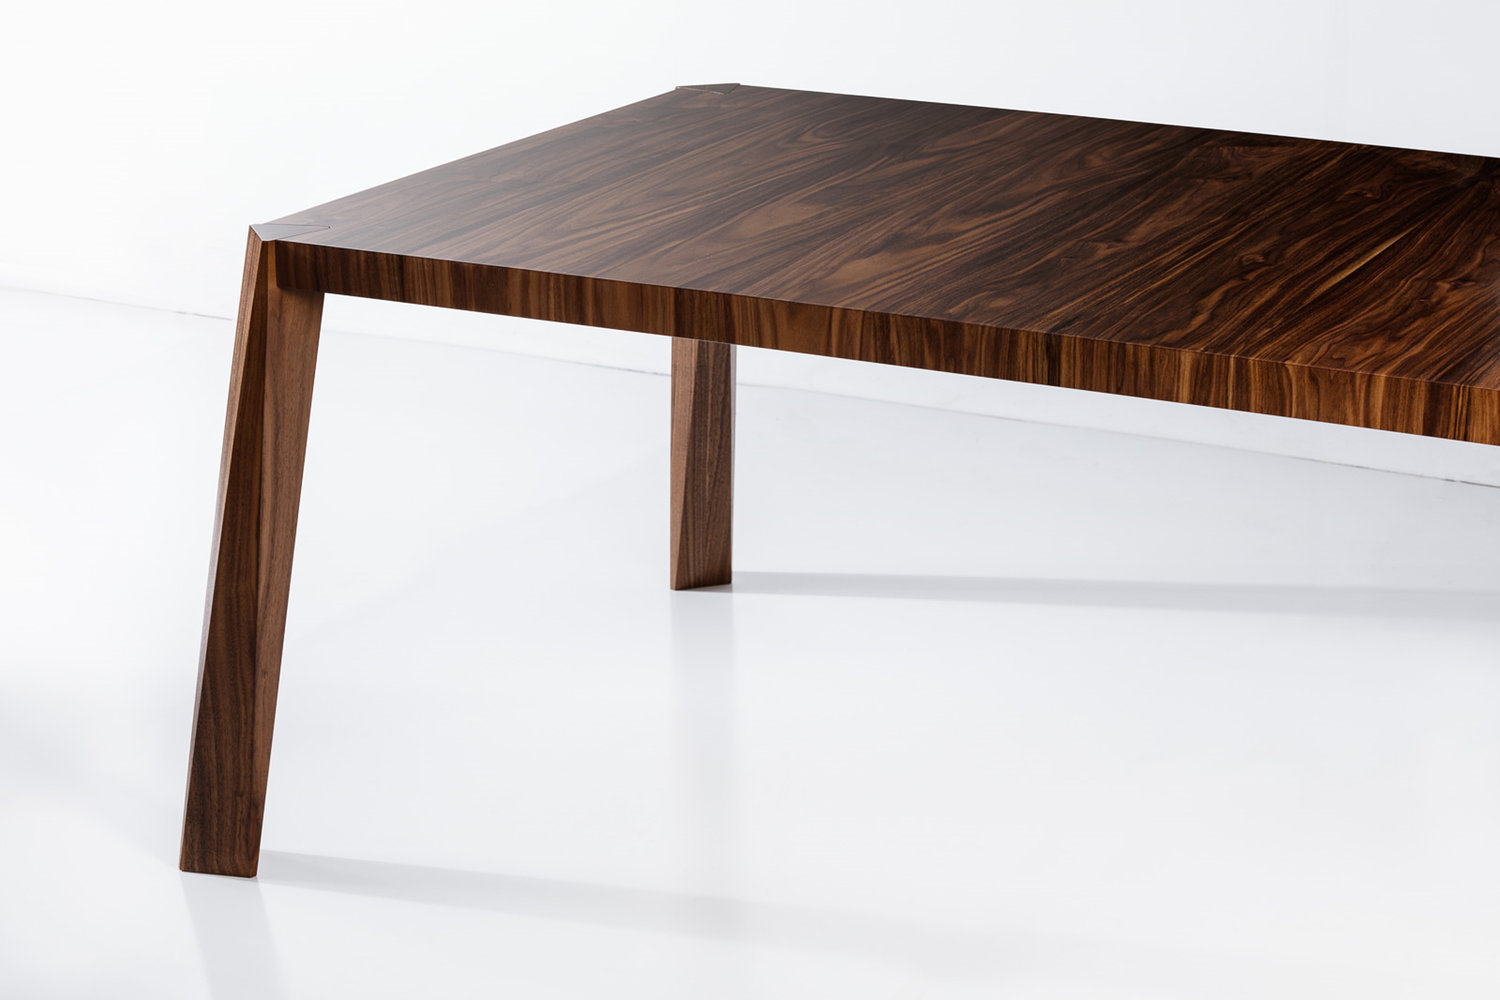 Dining Table - Local Melbourne Woodworker - The Local Project Feature Interview Daniel Poole